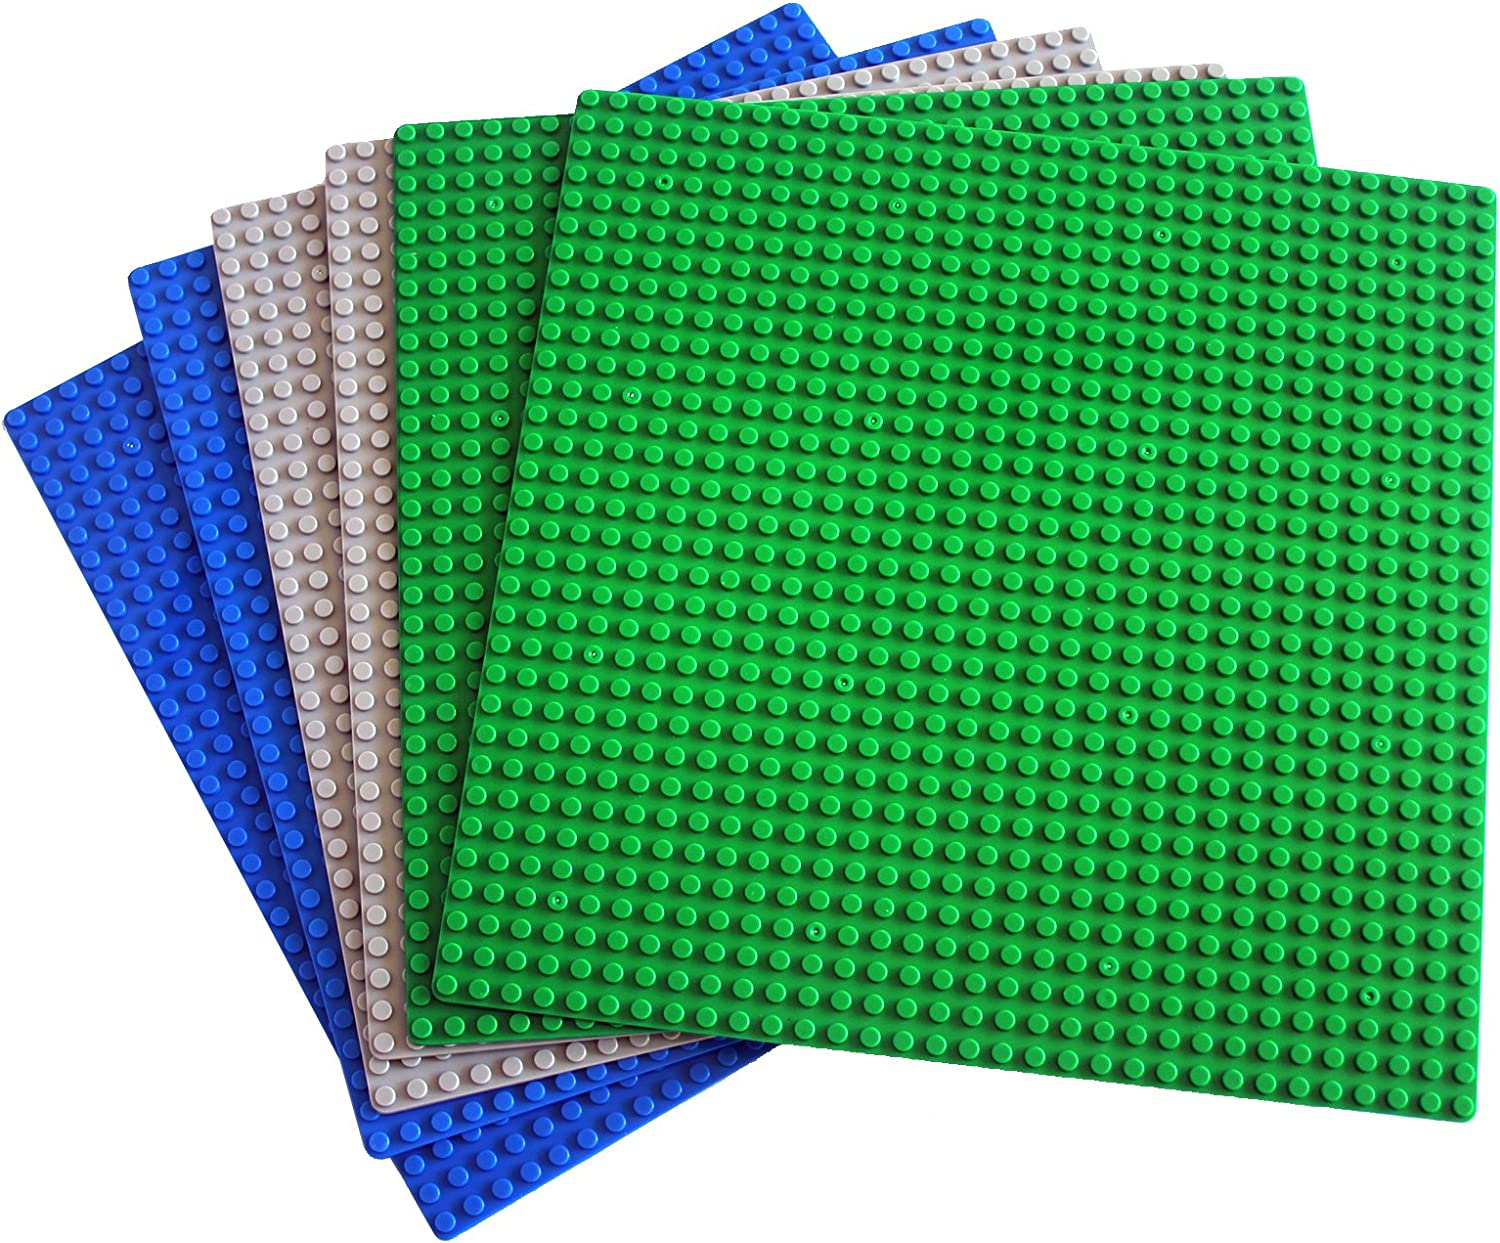 """dreambuilderToy Classic Building Base Plates 32x32 pegs or 10"""" x 10"""" Baseplate - Compatible with All Major Brands (6PC)"""